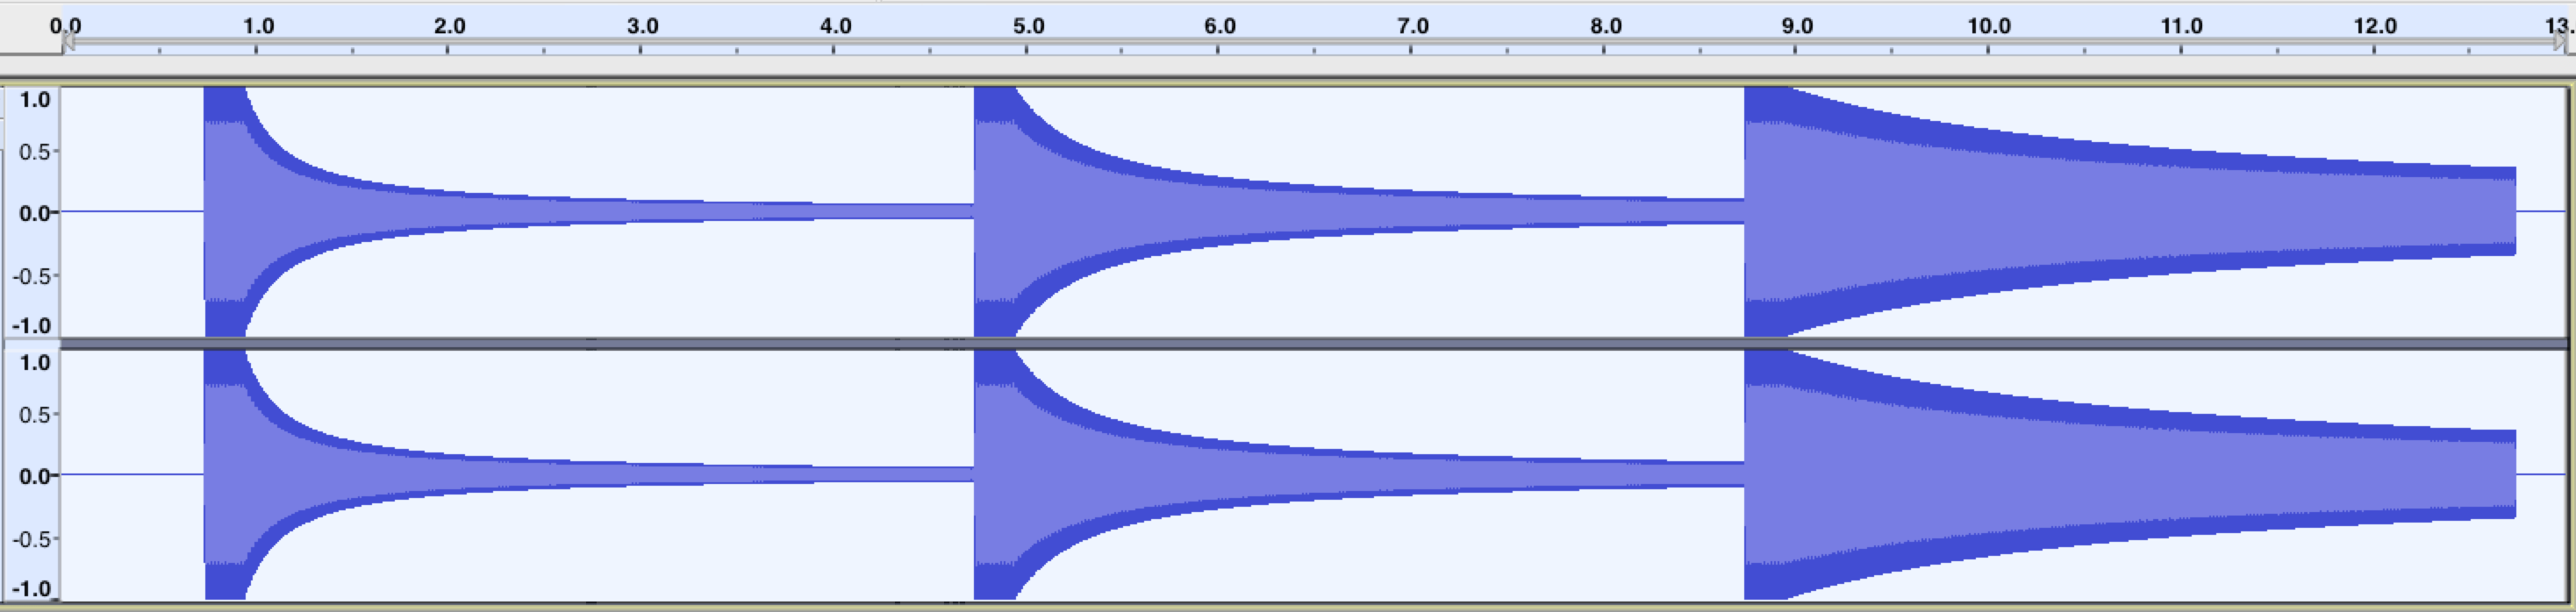 A waveform visualisation of three oscillator tones produced in Web Audio. Each oscillator moves away from the listener at the same speed, but with different rolloffFactors affecting the resulting volume decay.